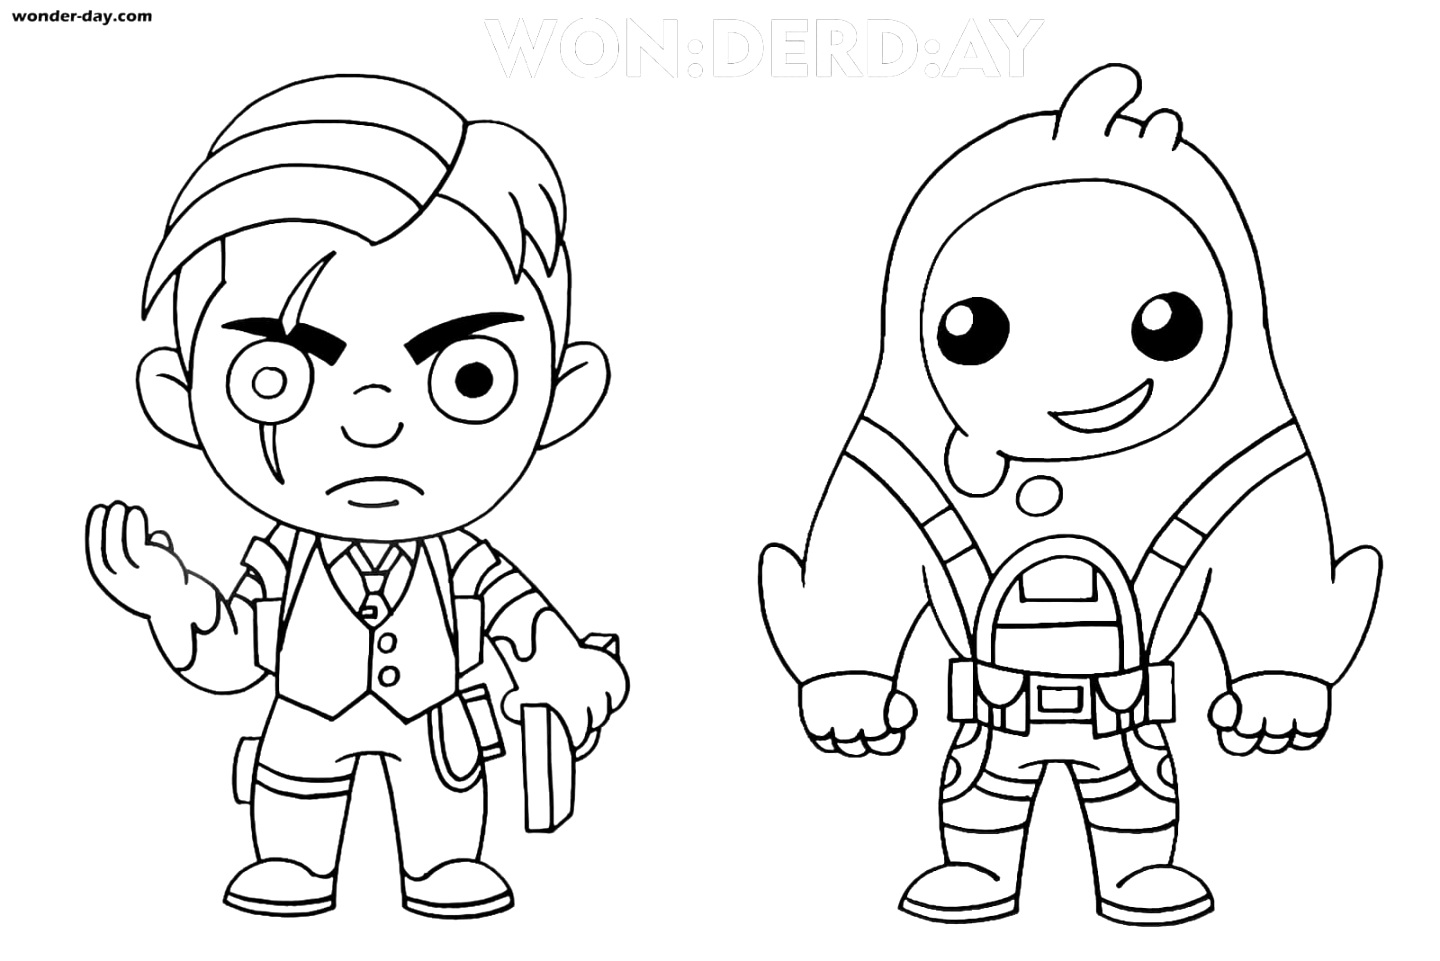 Outstanding fortnite coloring pages cool coloring sheet